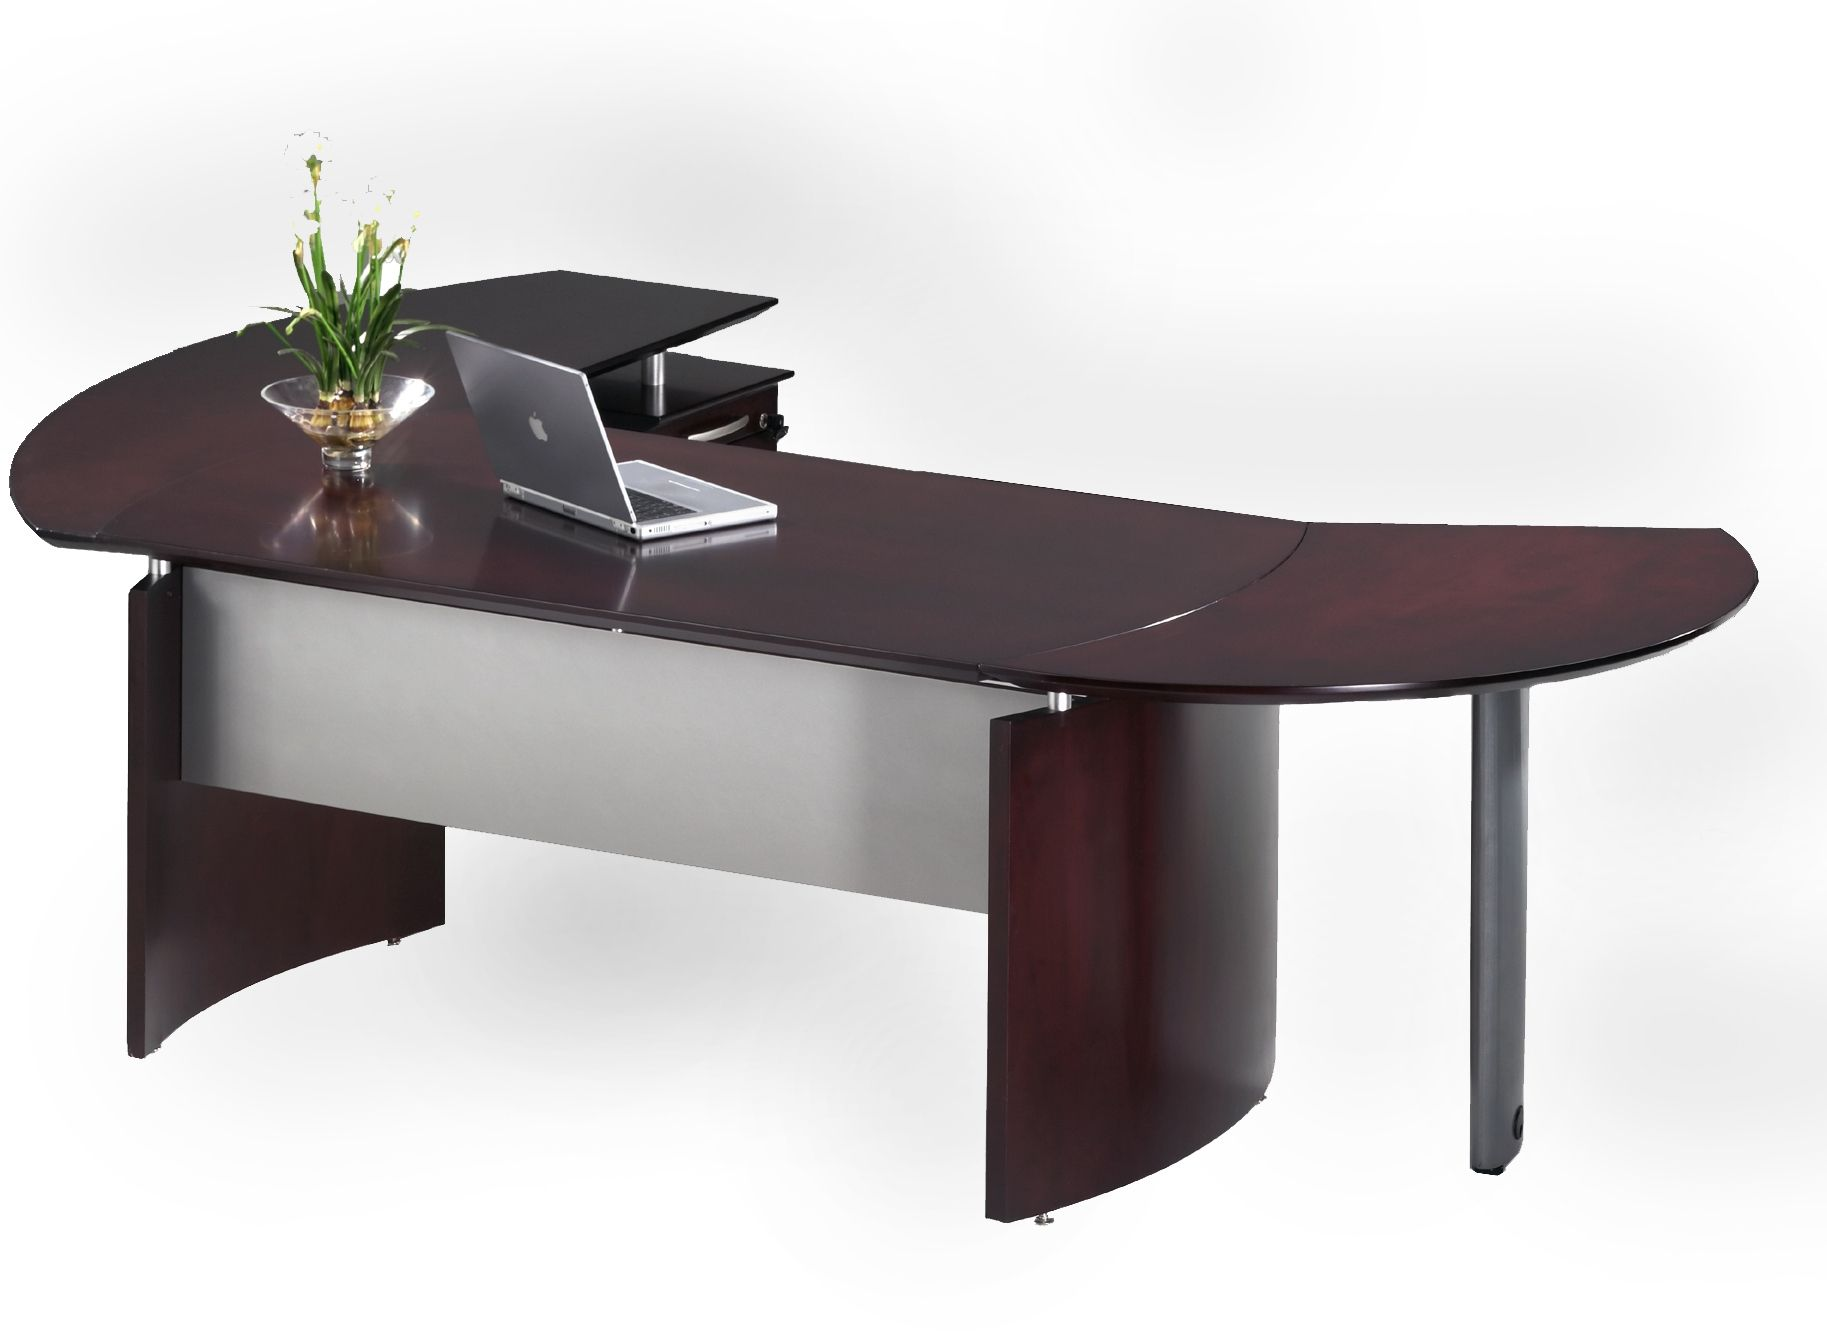 curved office desk office decorations amazing plywood curved desk l shaped style for office. Black Bedroom Furniture Sets. Home Design Ideas